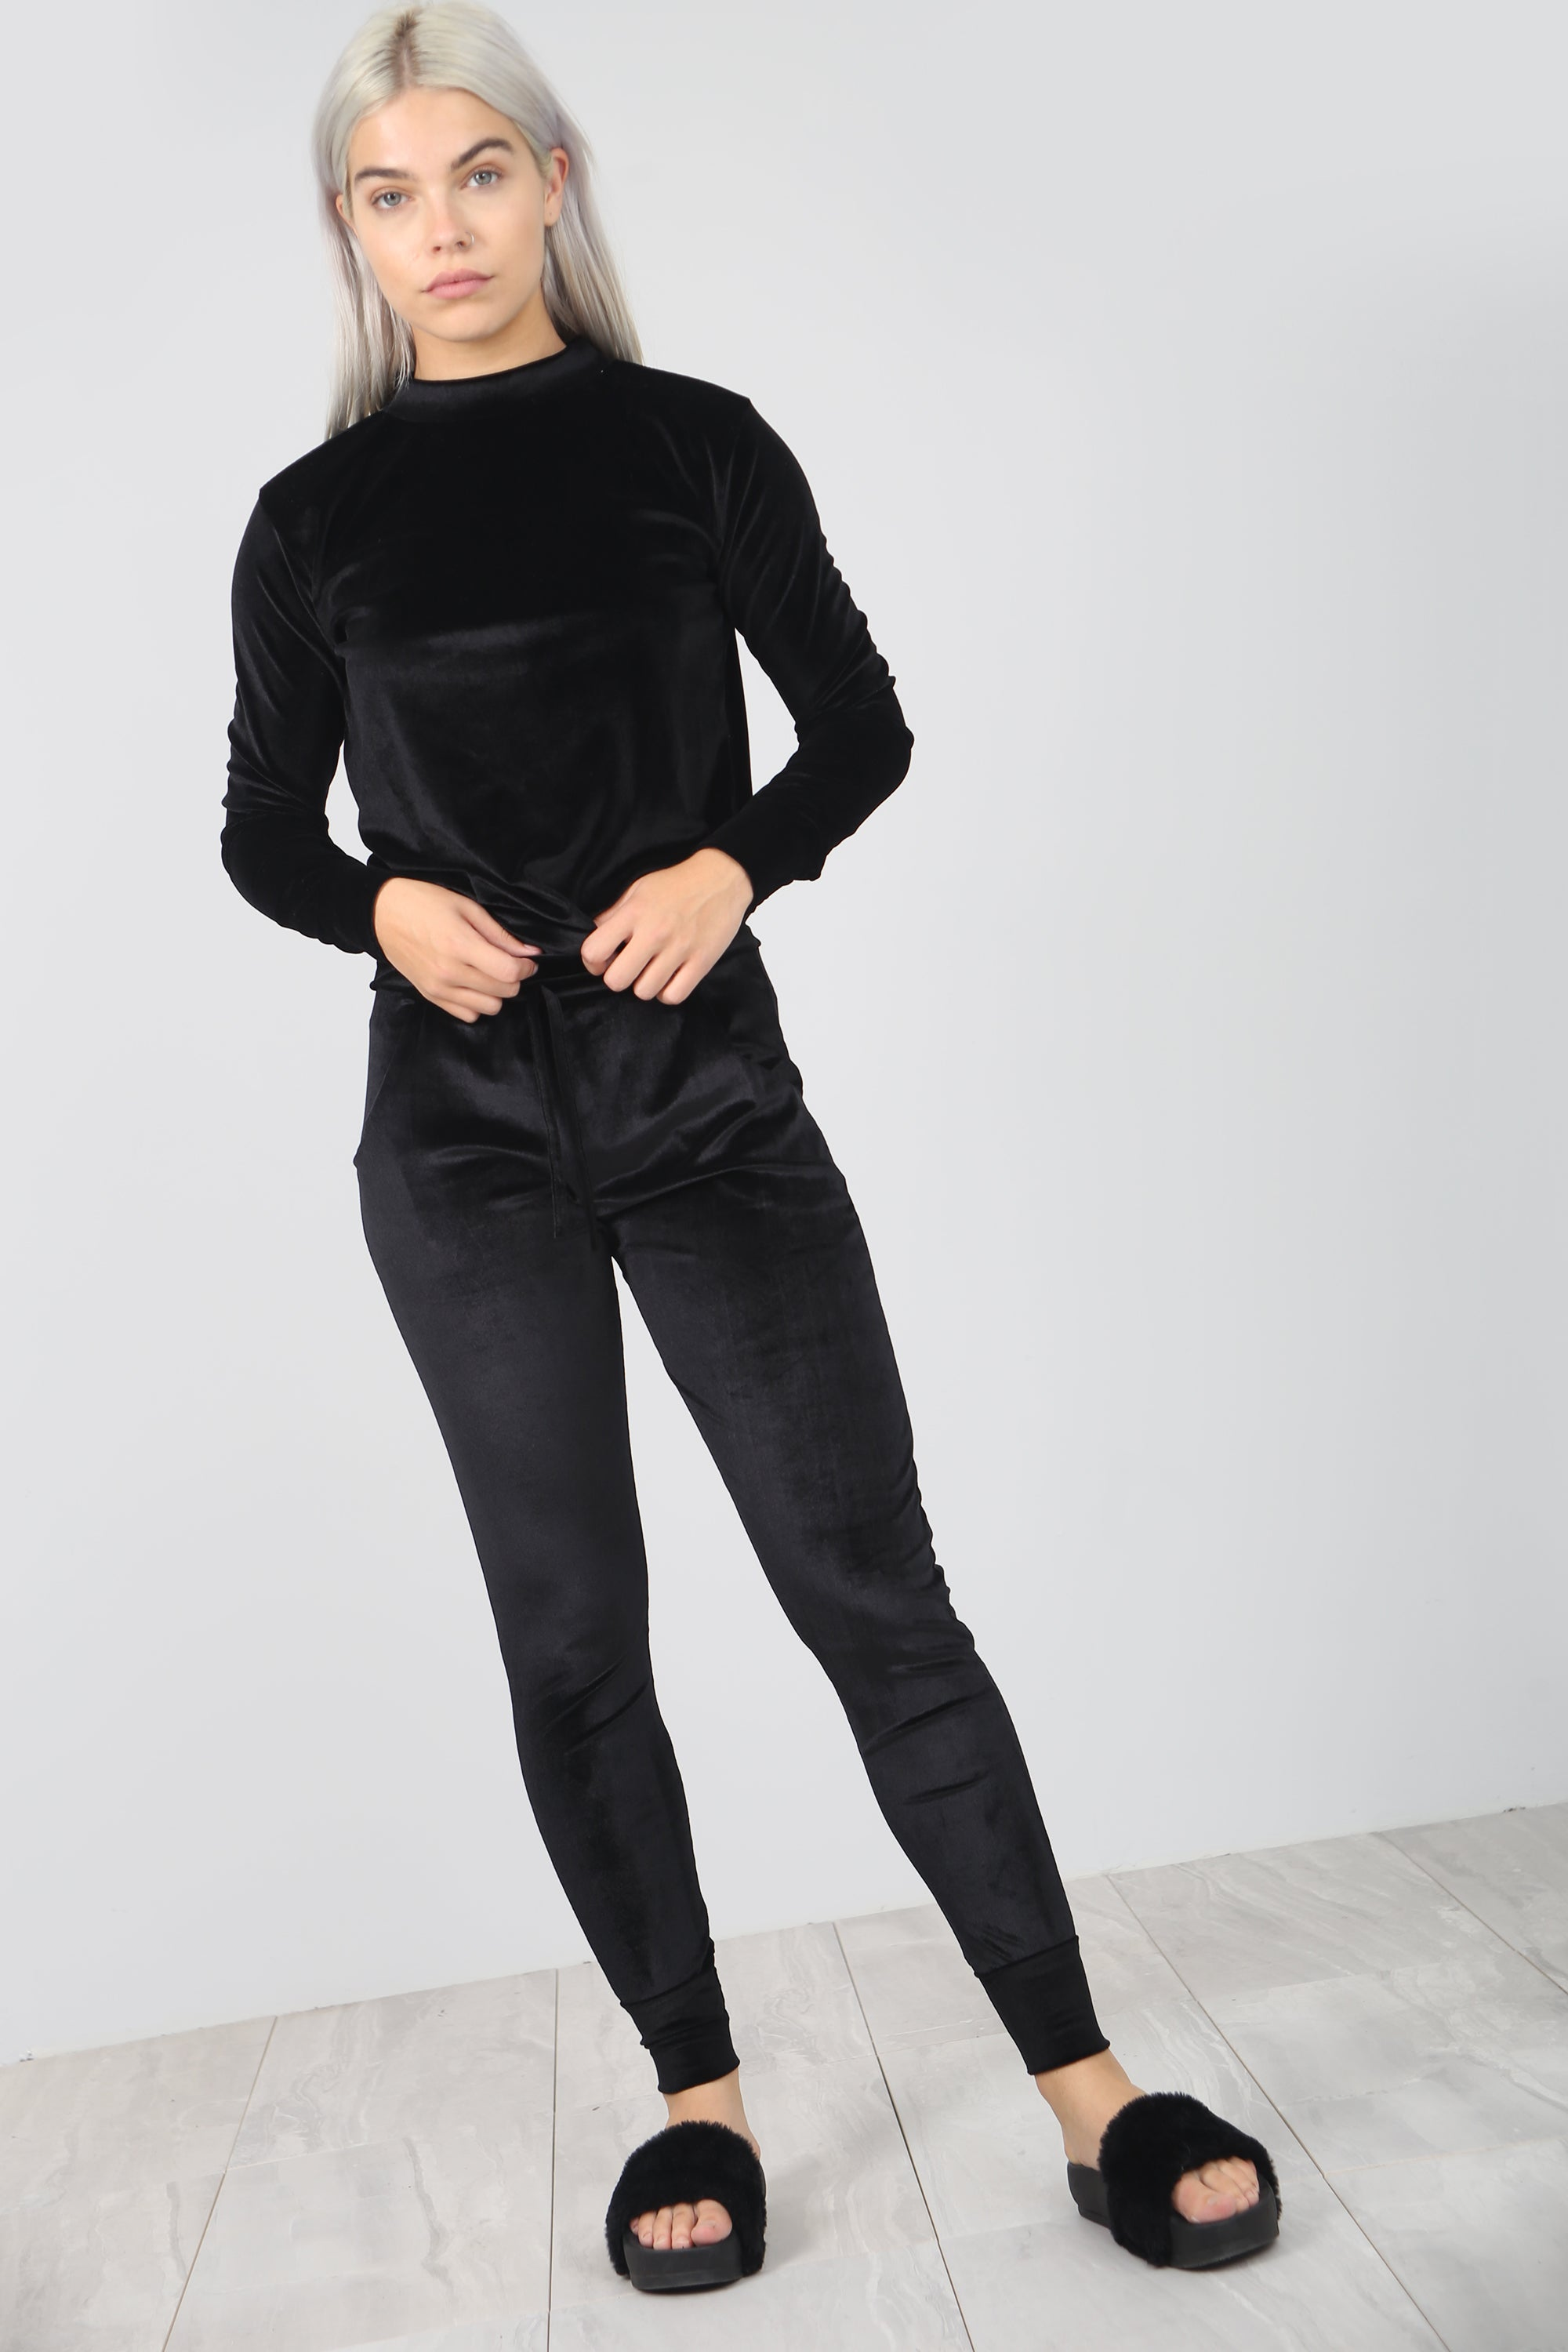 Faux Velvet Black Slim Fit Lounge Wear Coord - bejealous-com